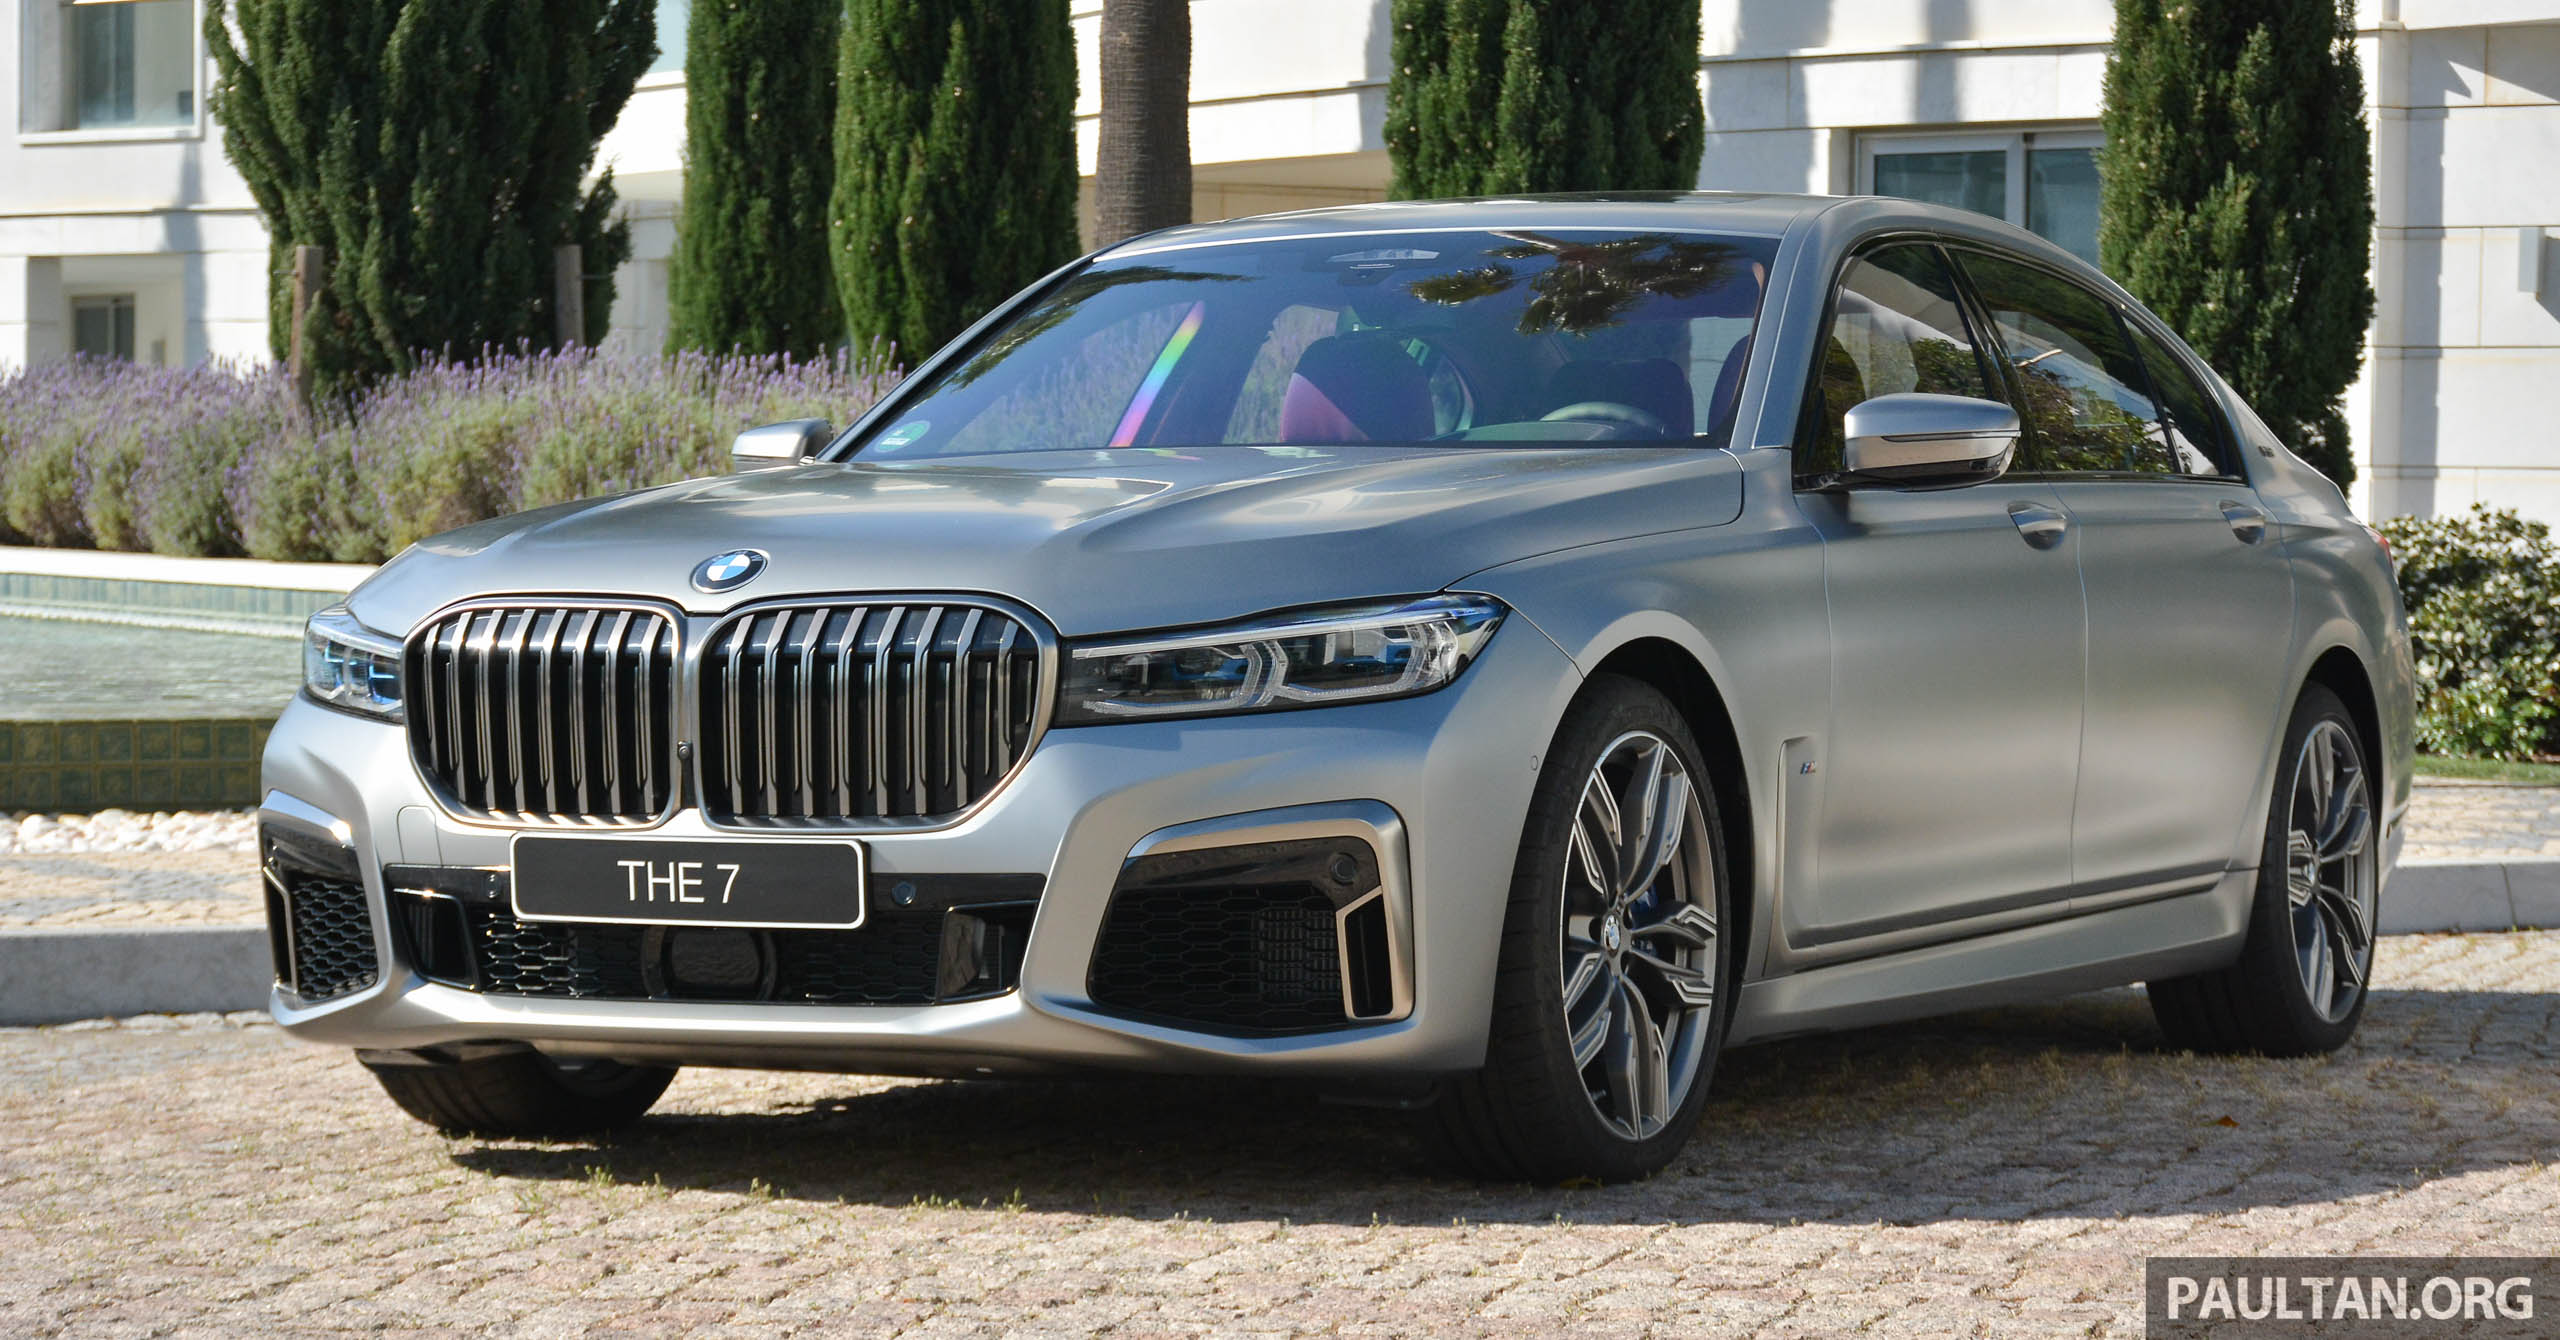 Bmw To Continue Offering A V12 Engine Up Until 2023 Paultan Org